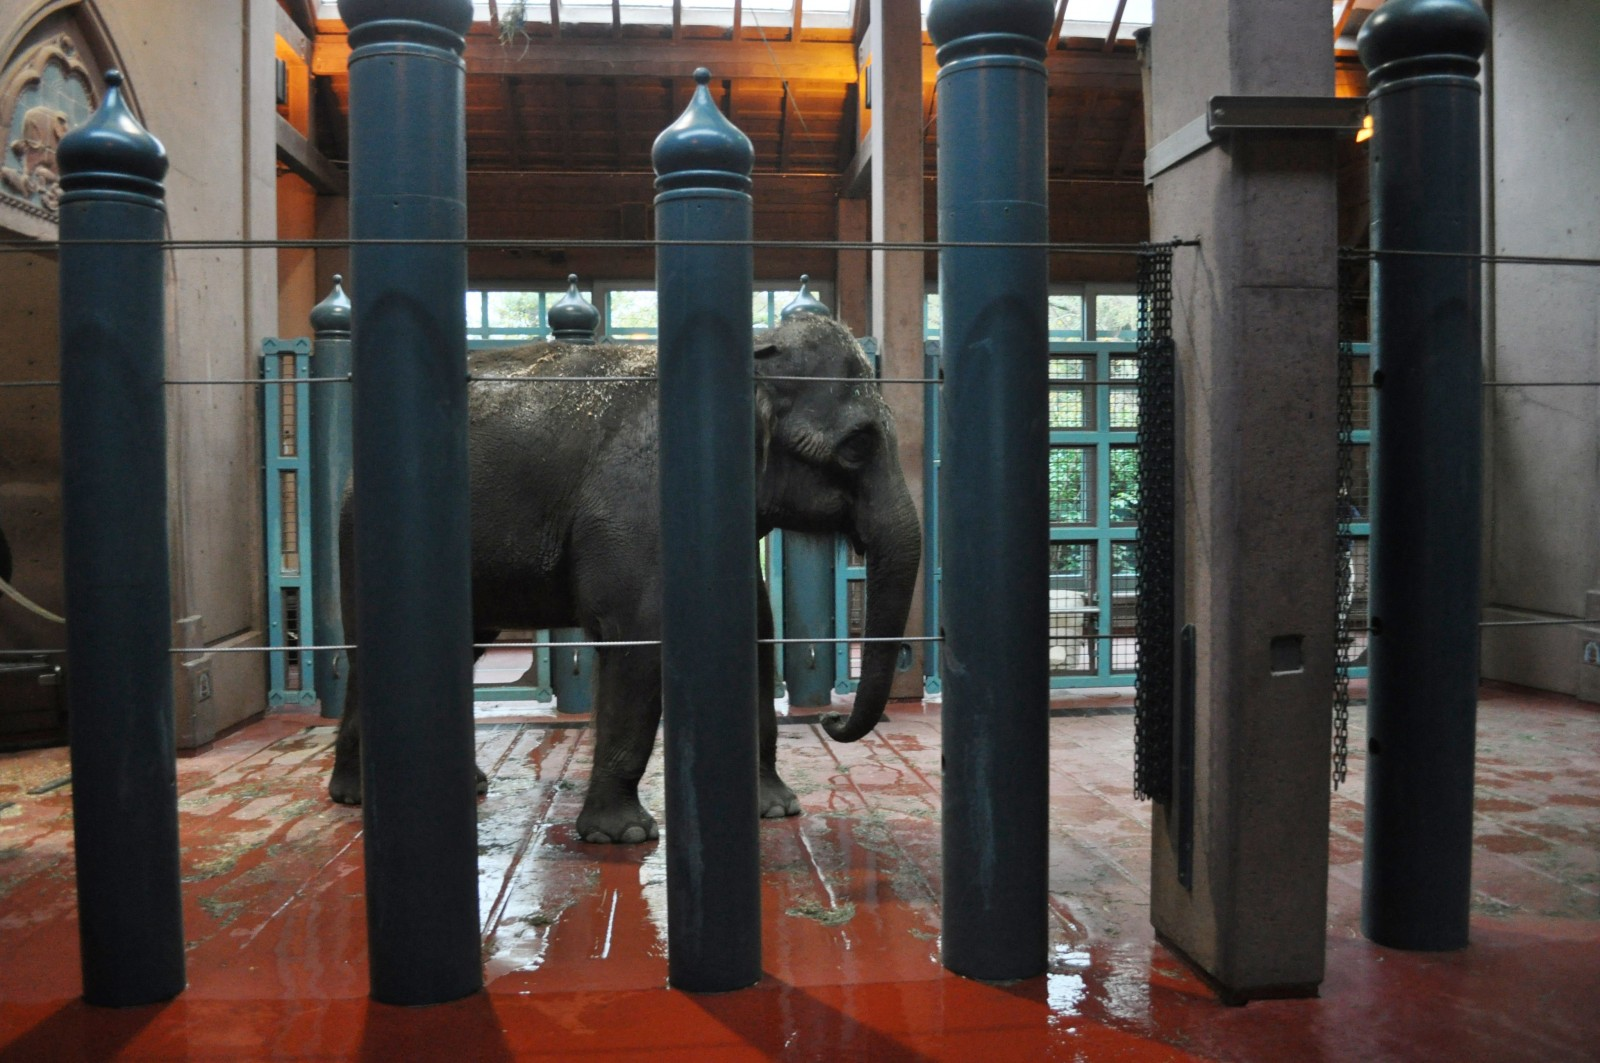 Chai and Bamboo: Seattle's Elephants Have Left The Emerald City But Their Sad Saga Isn't Over